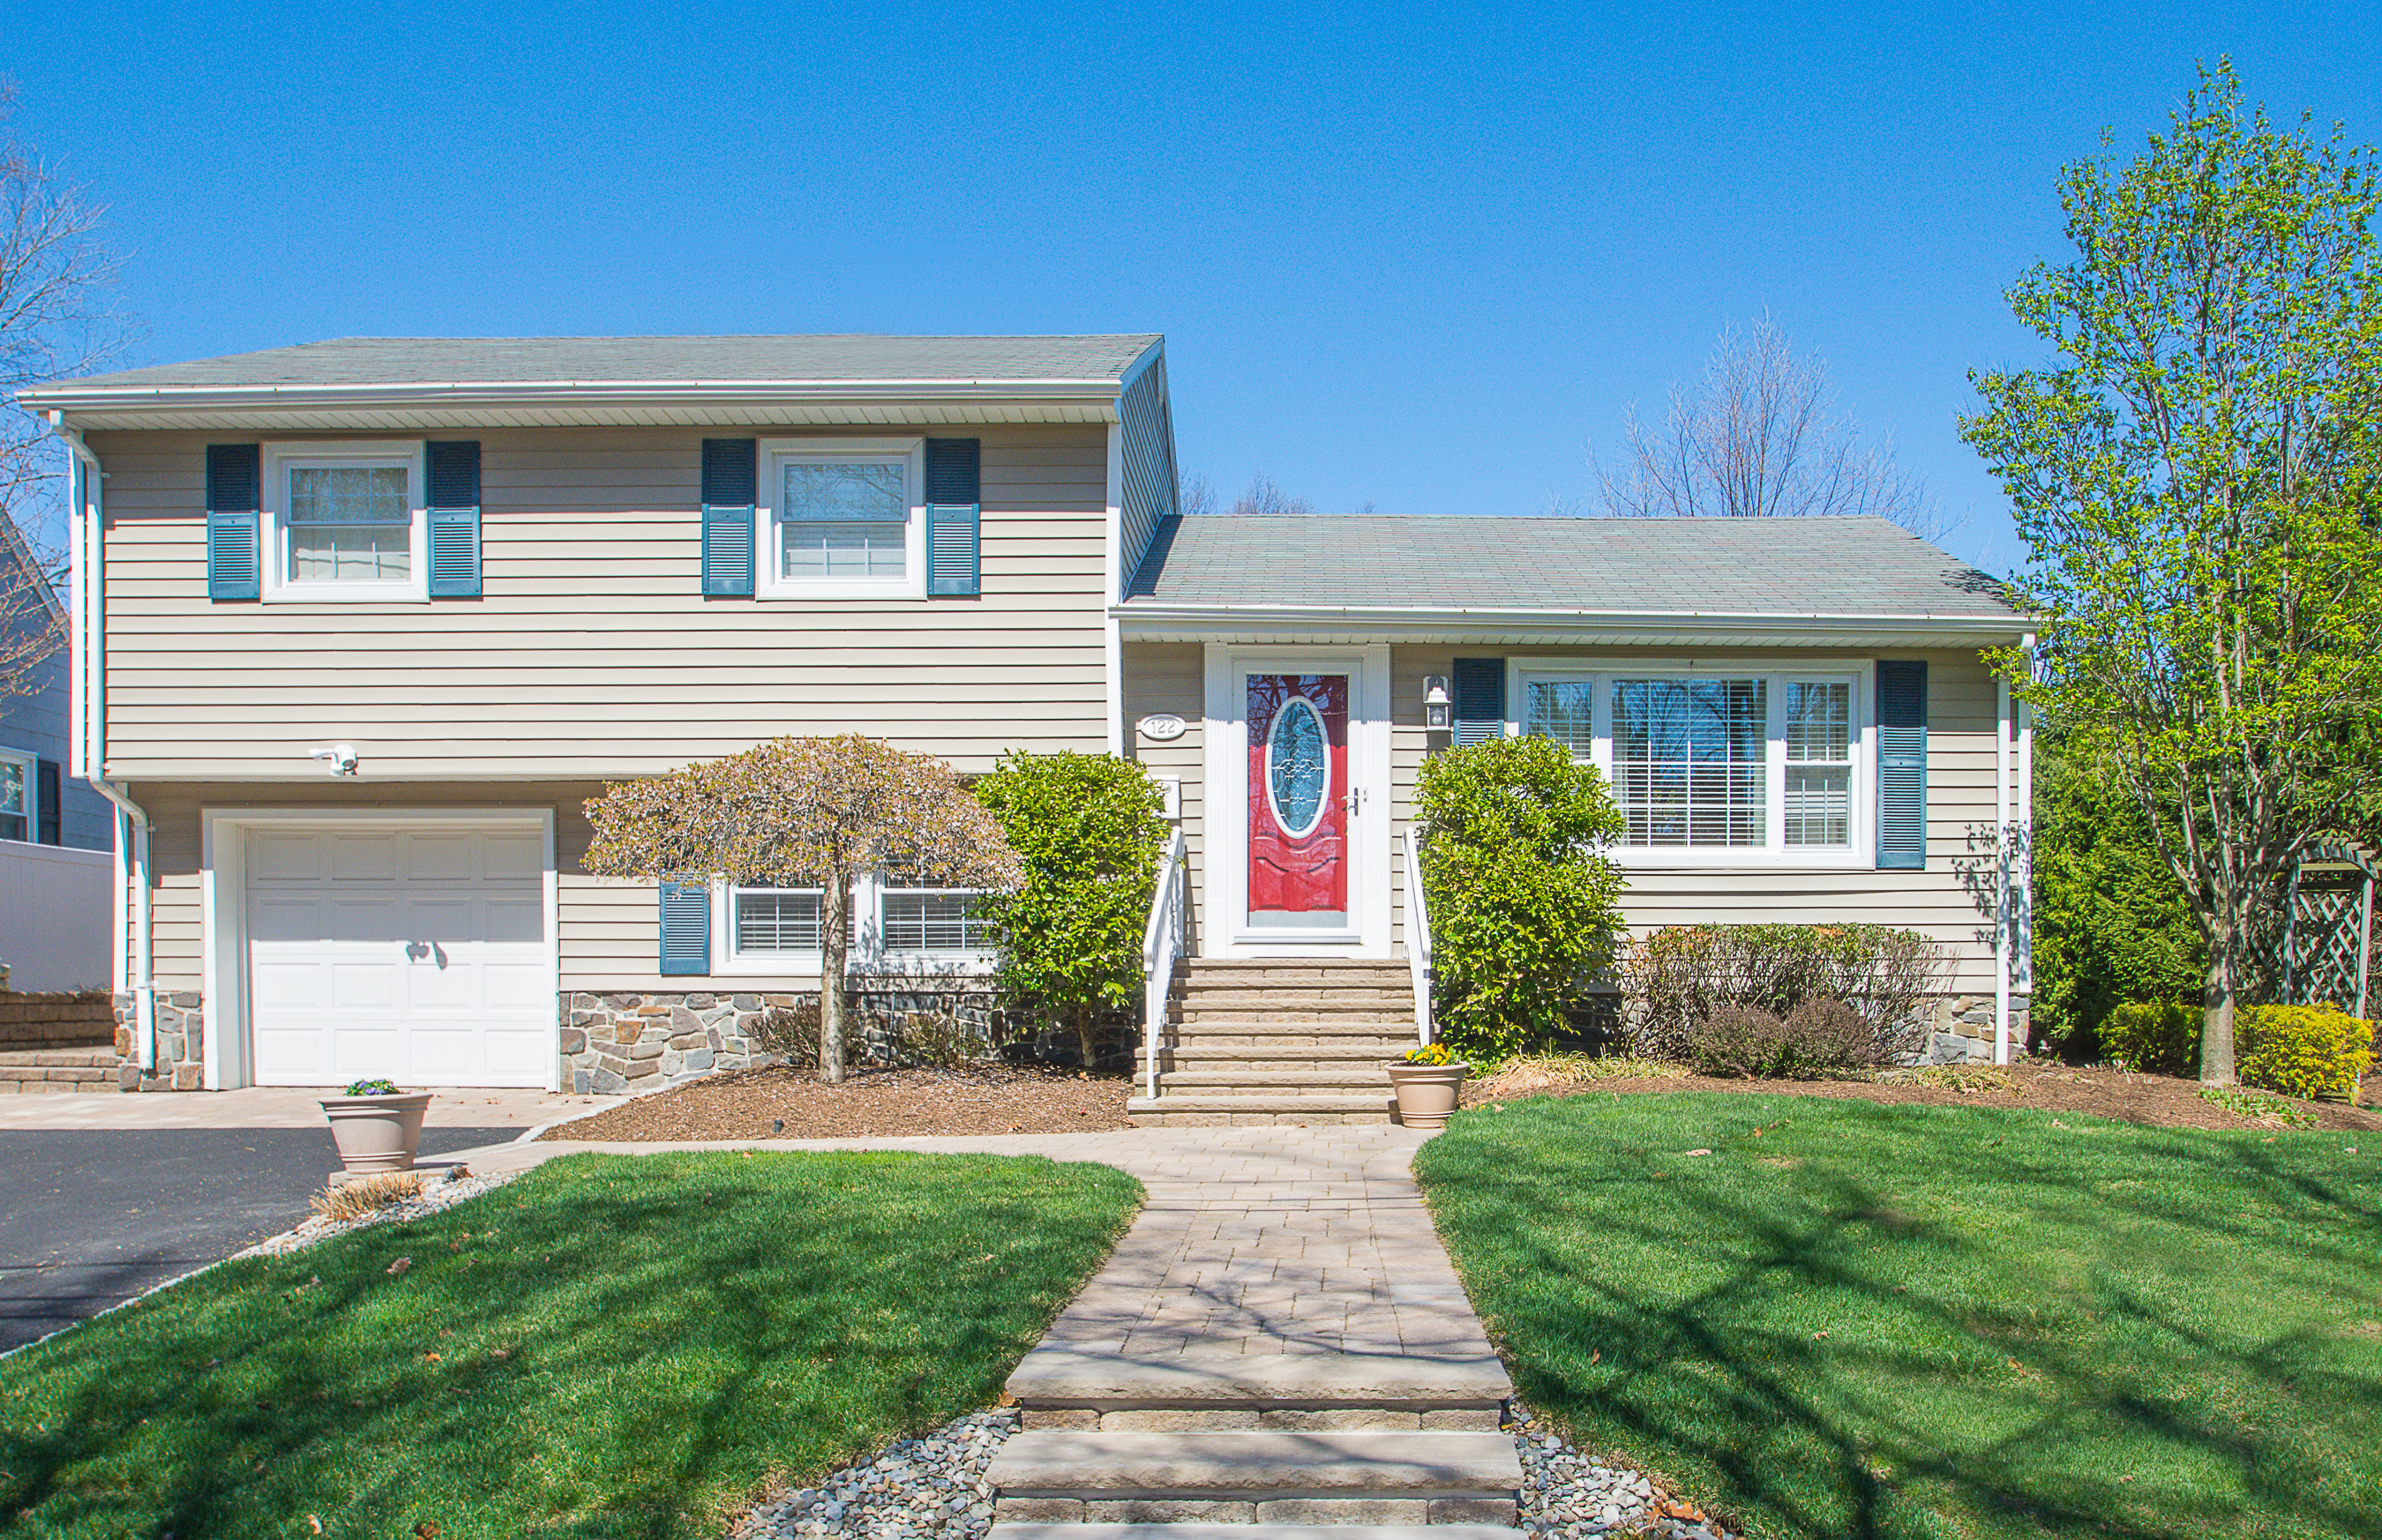 122 Demarest Avenue Emerson NJ 07630 Sold By The Gibbons Team Gibbons Te